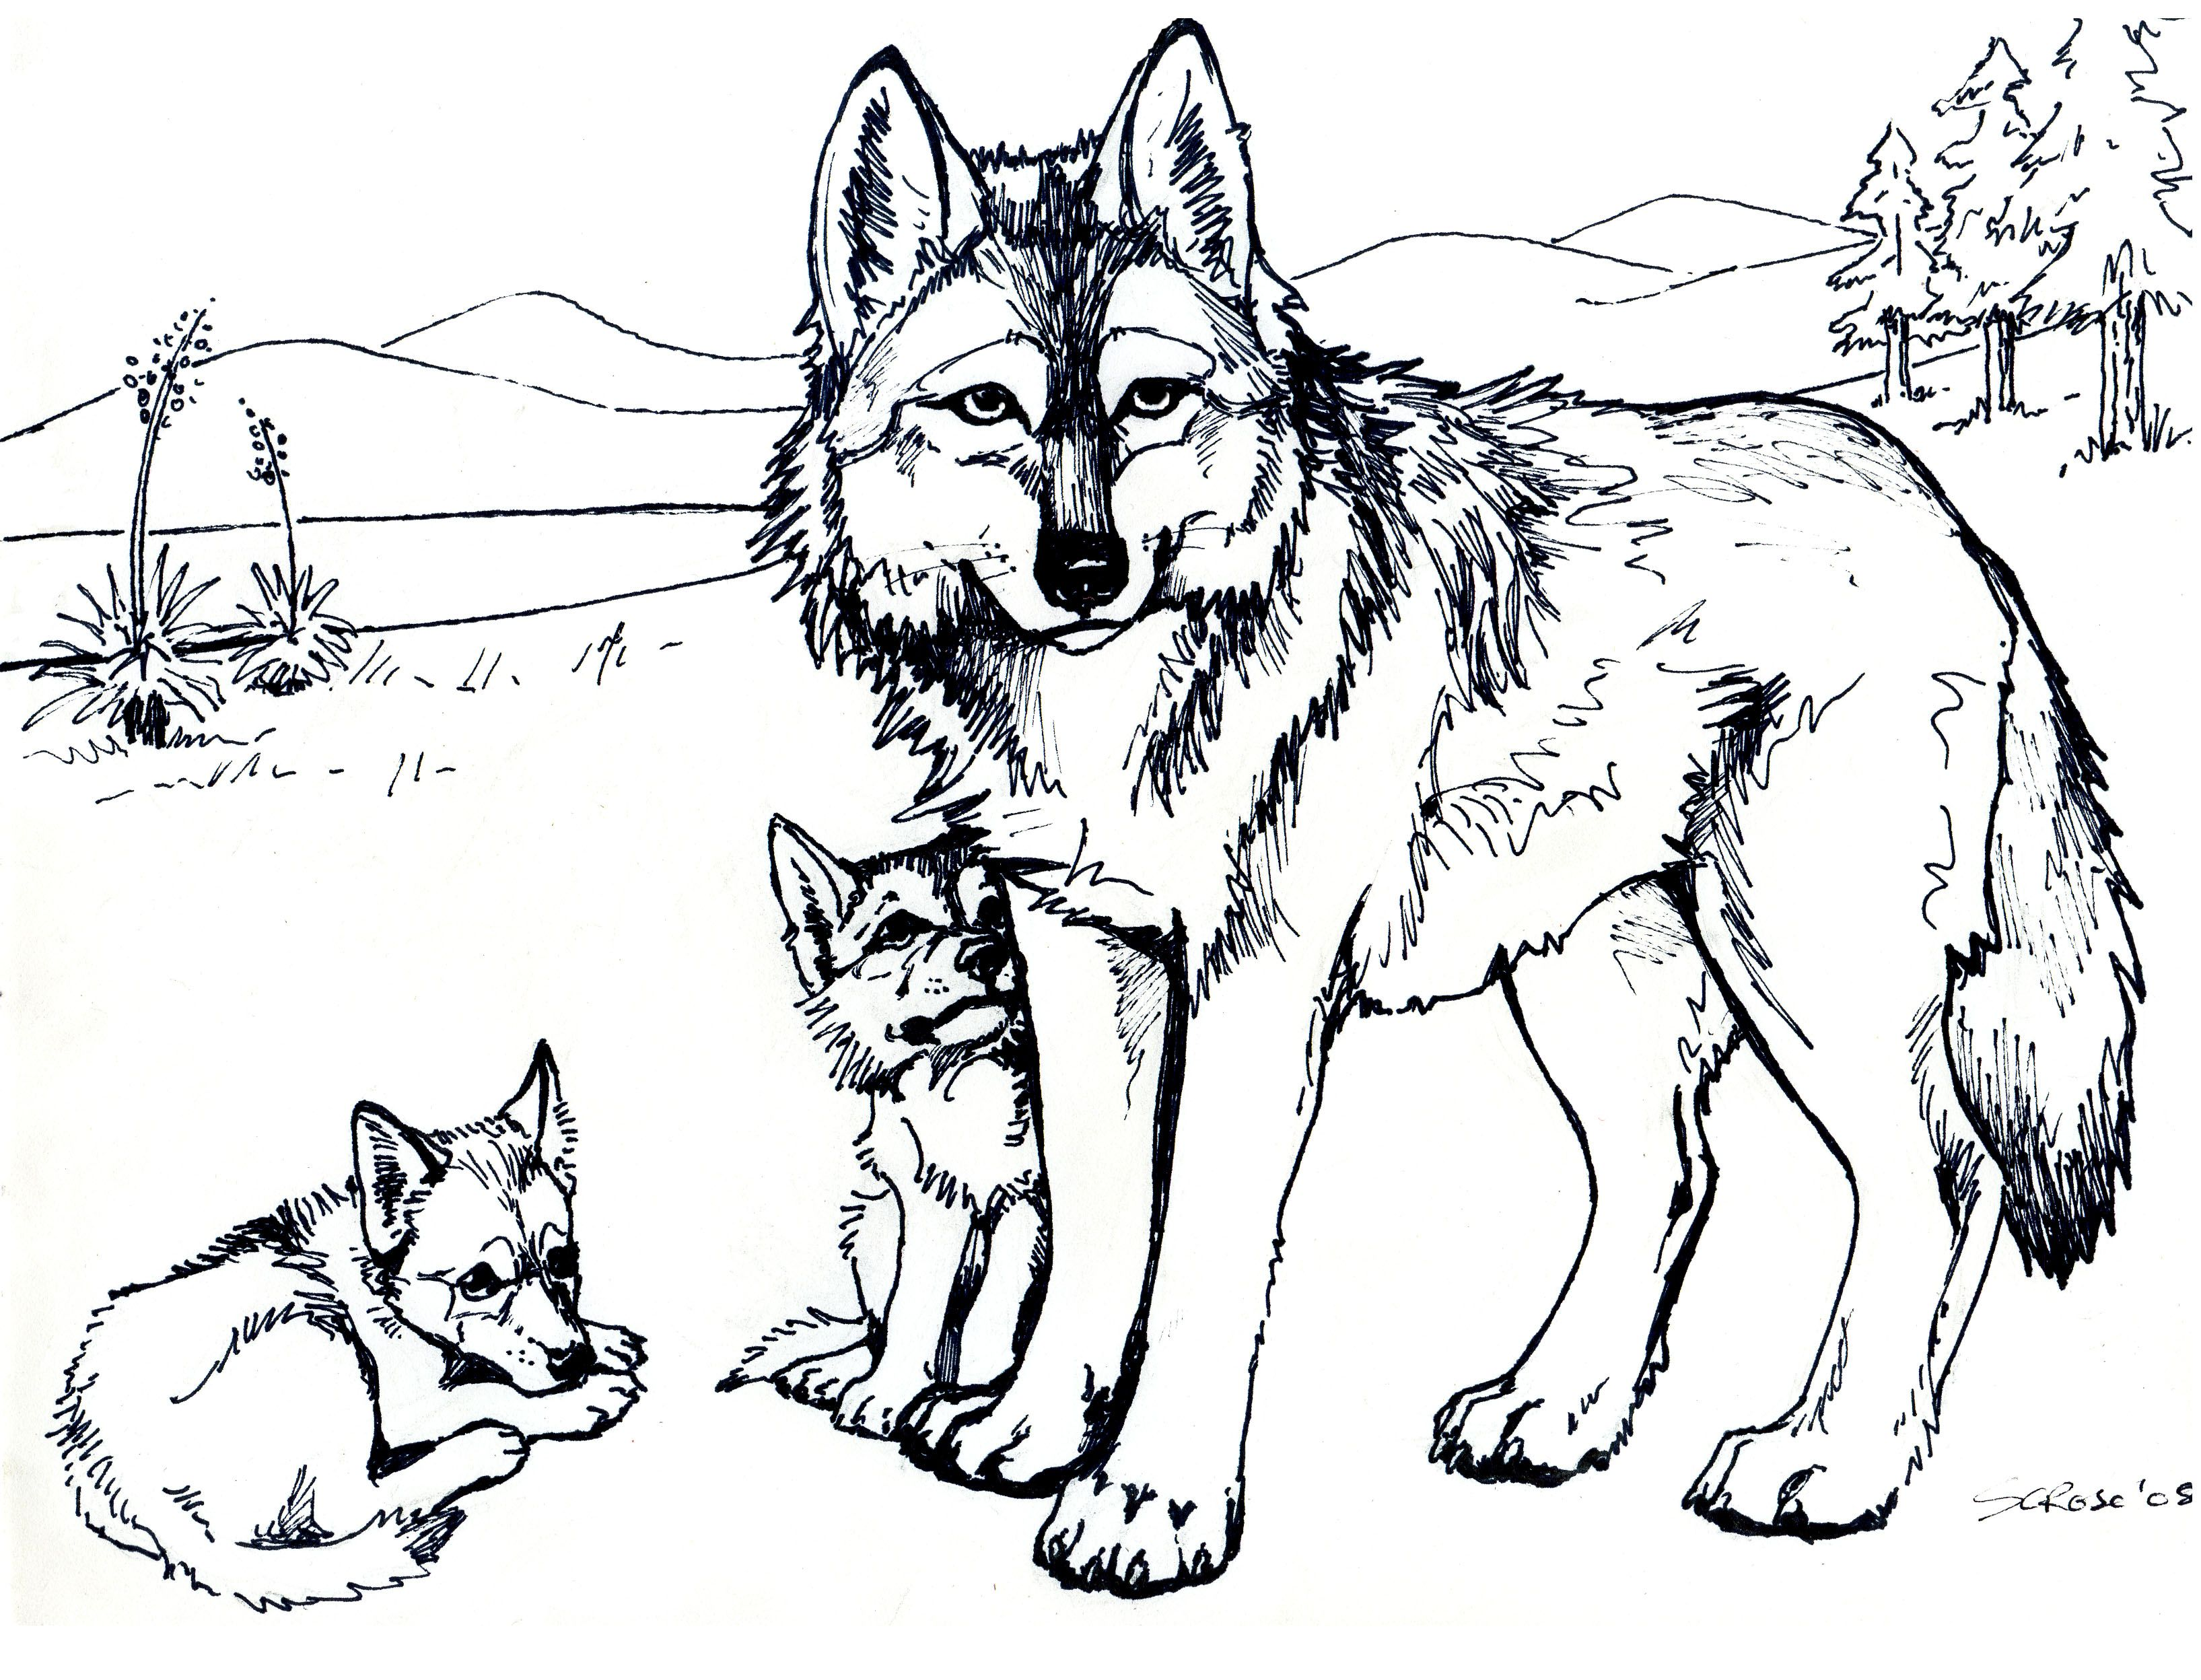 Free animals coloring pages for kids to print - Download And Print Printable Free Wolf Coloring Pages For Adults Coloring Pages Pinterest Adult Coloring Christmas Colors And Embroidery Ideas